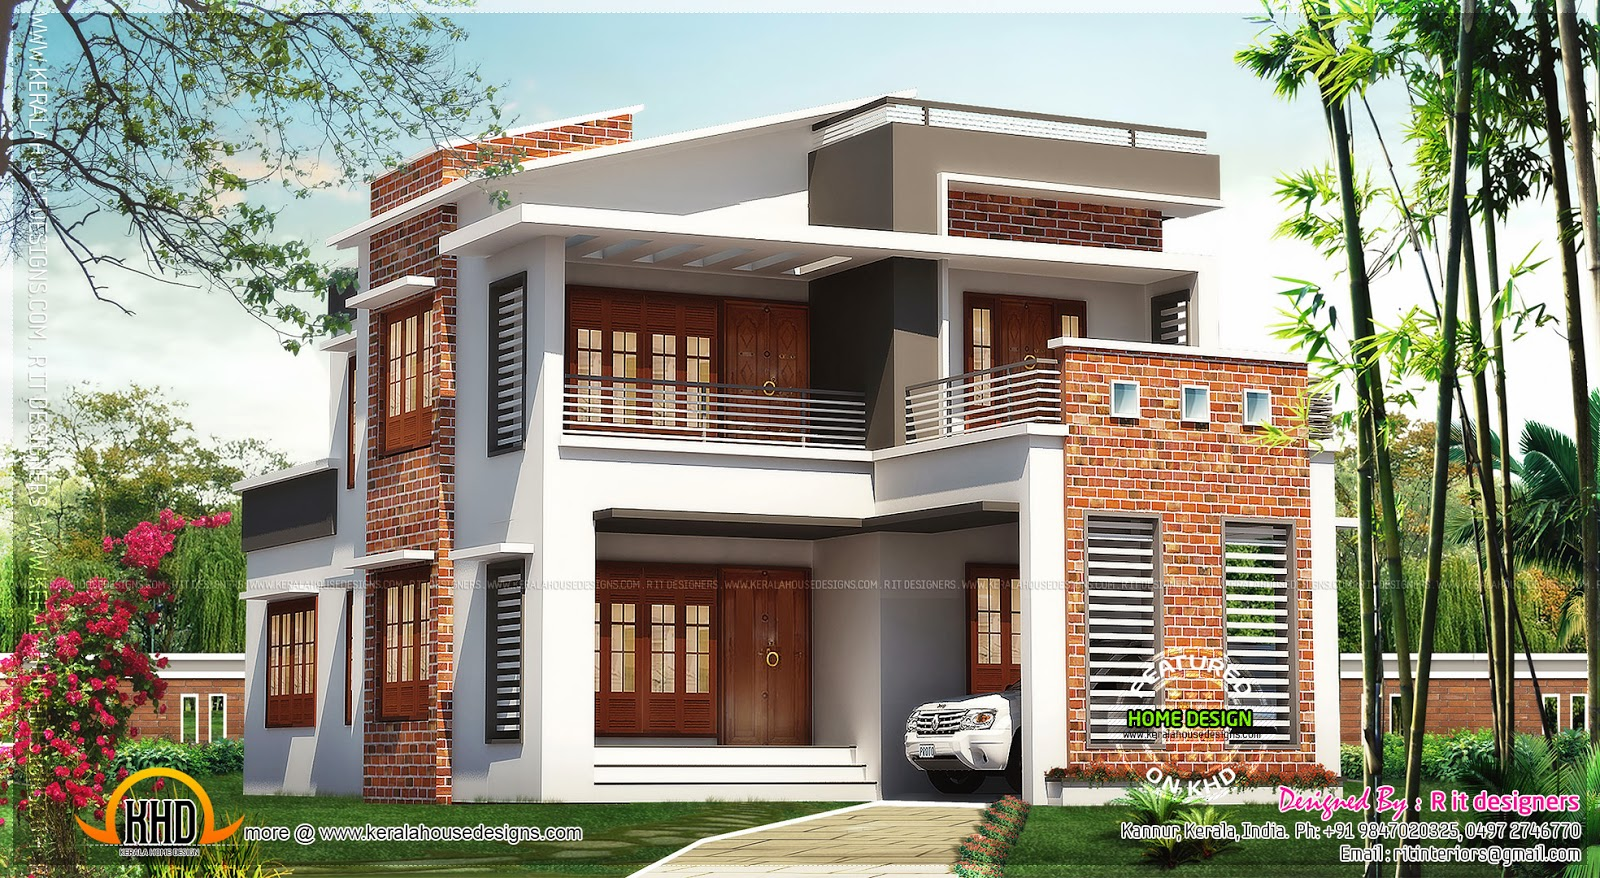 Brick mix house exterior design kerala home design and for Brick exterior design